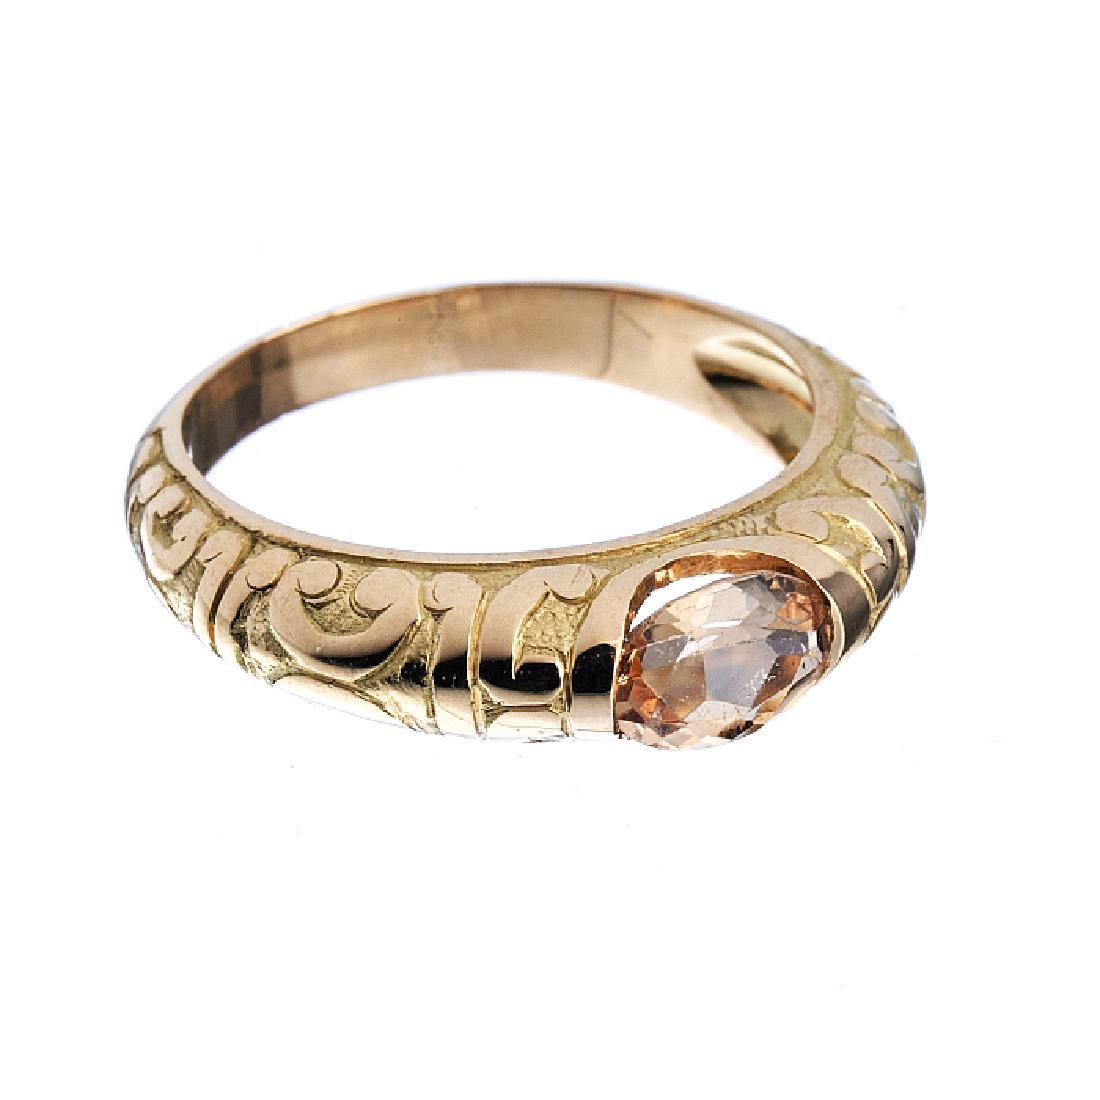 Ring in gold with a topaz